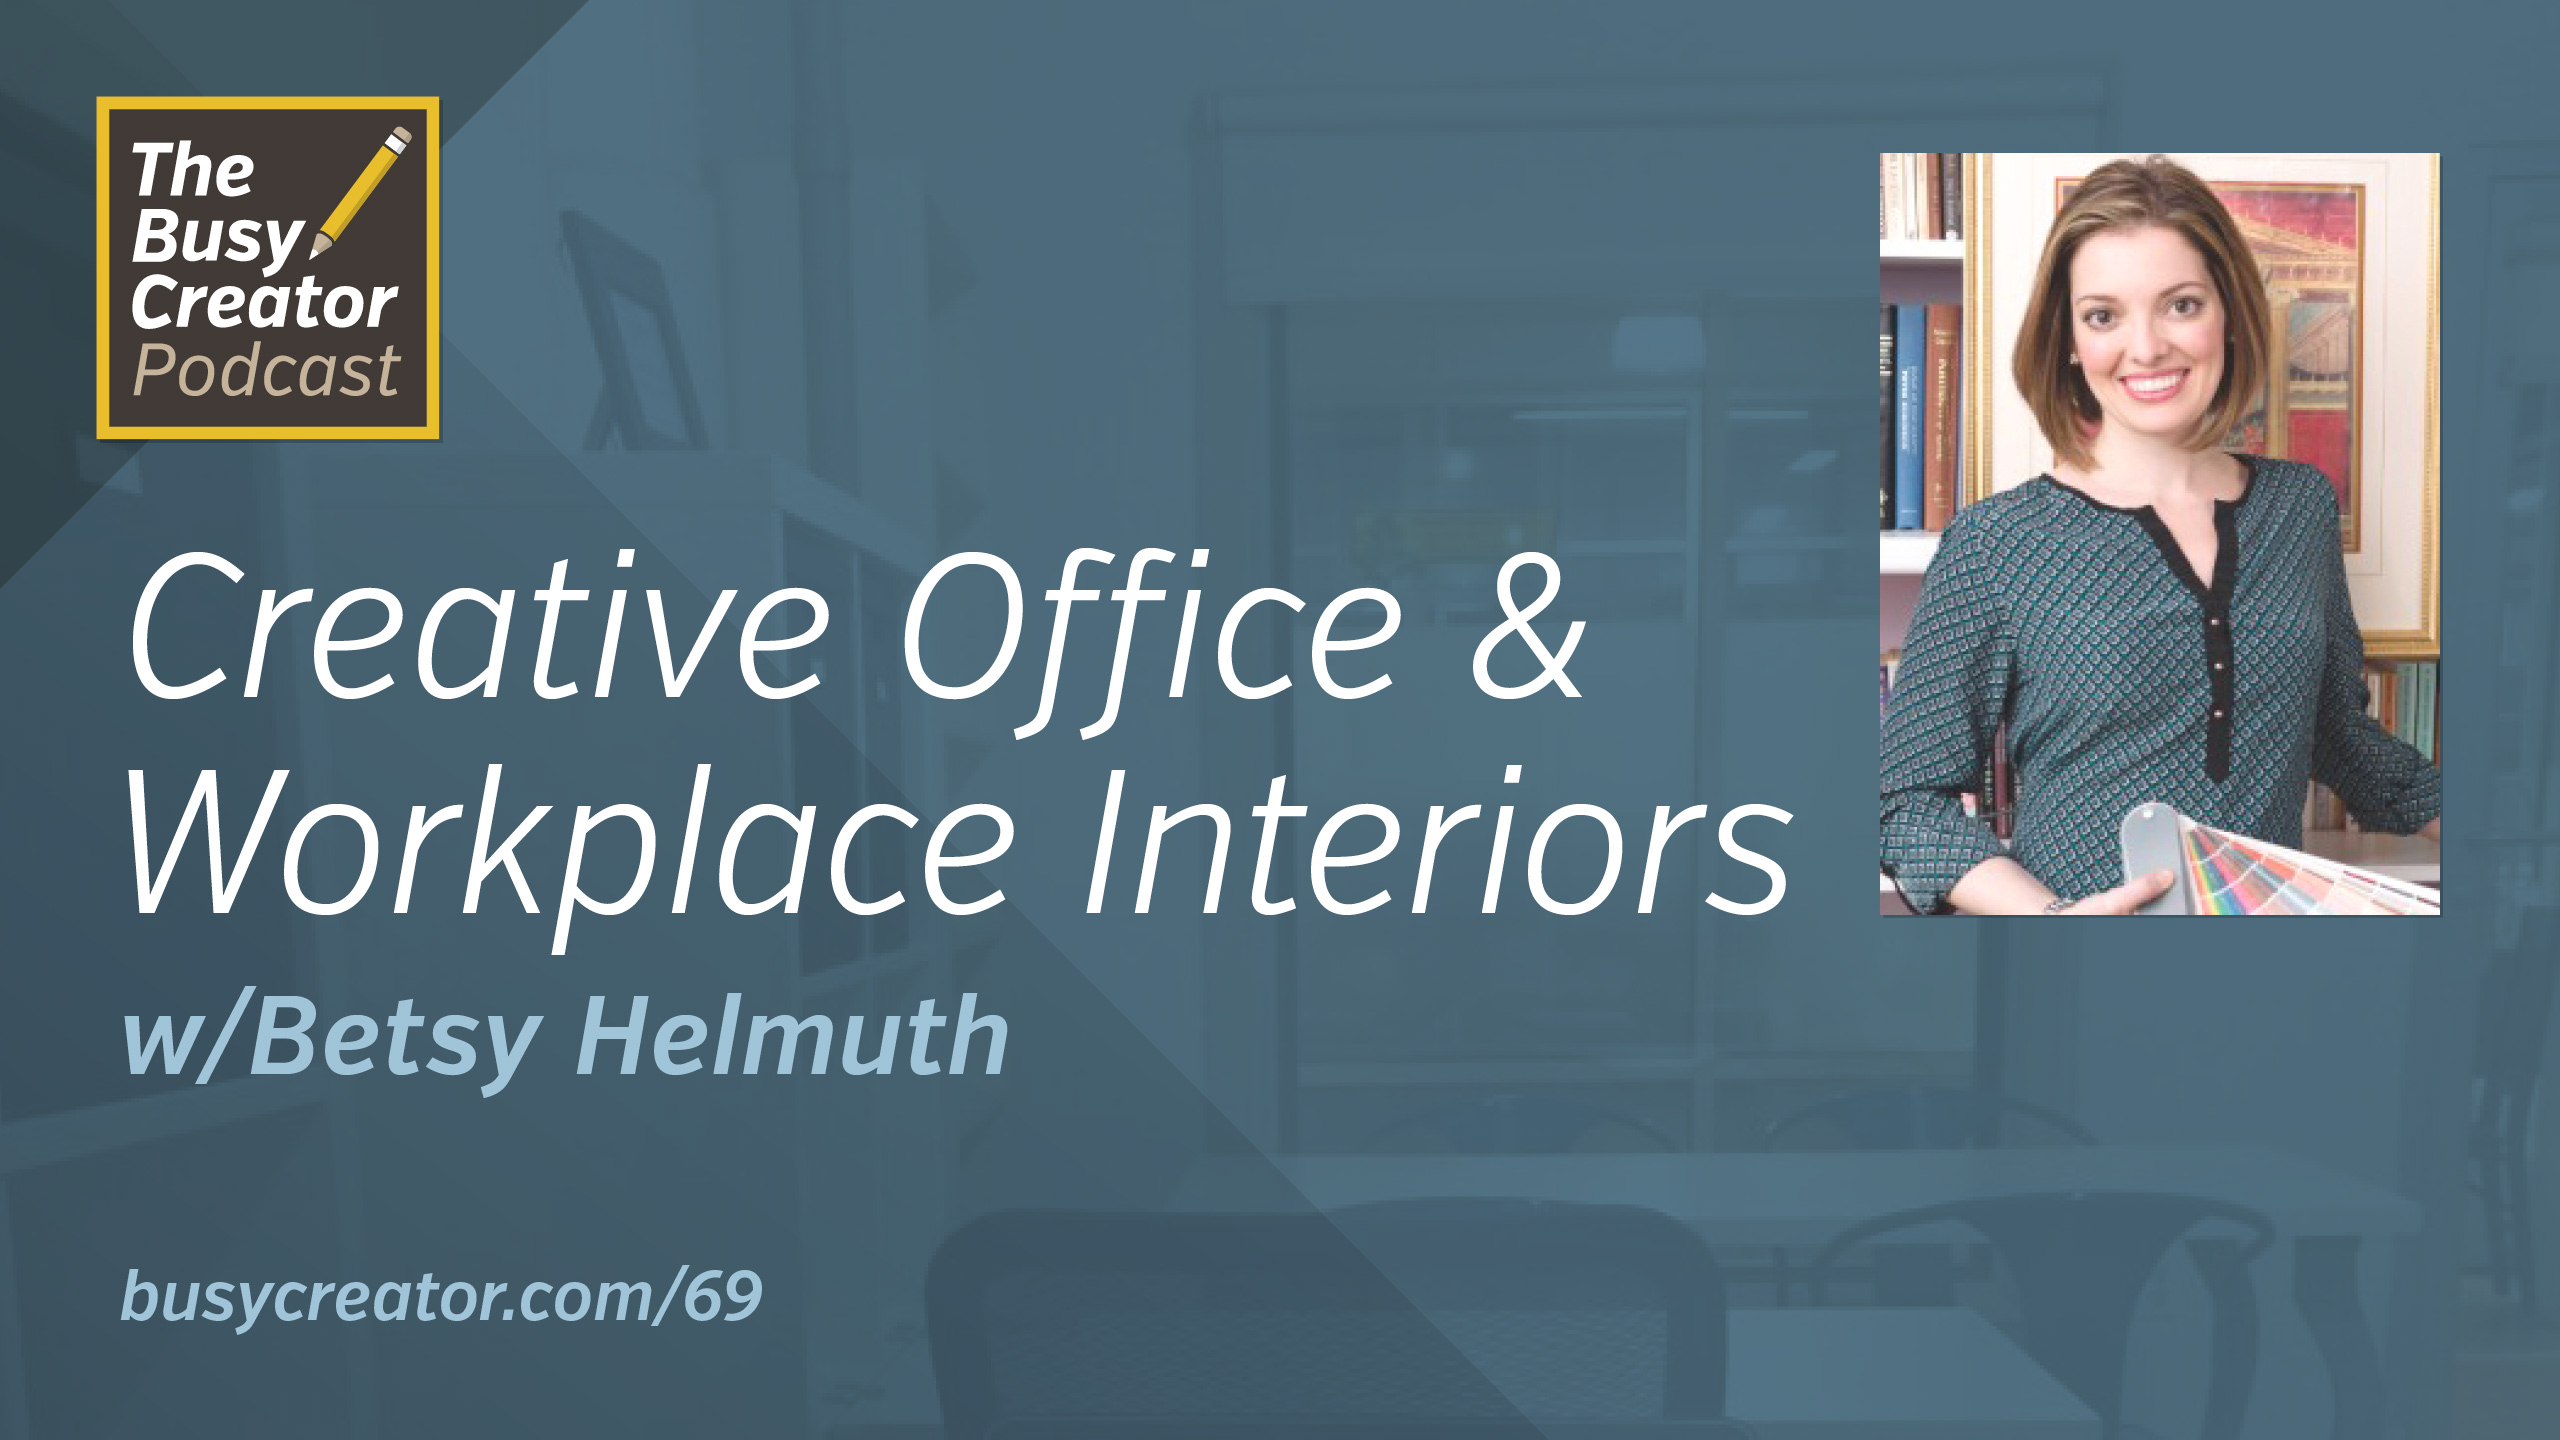 How to Design Creative Office & Workplace Interiors, with Betsy Helmuth